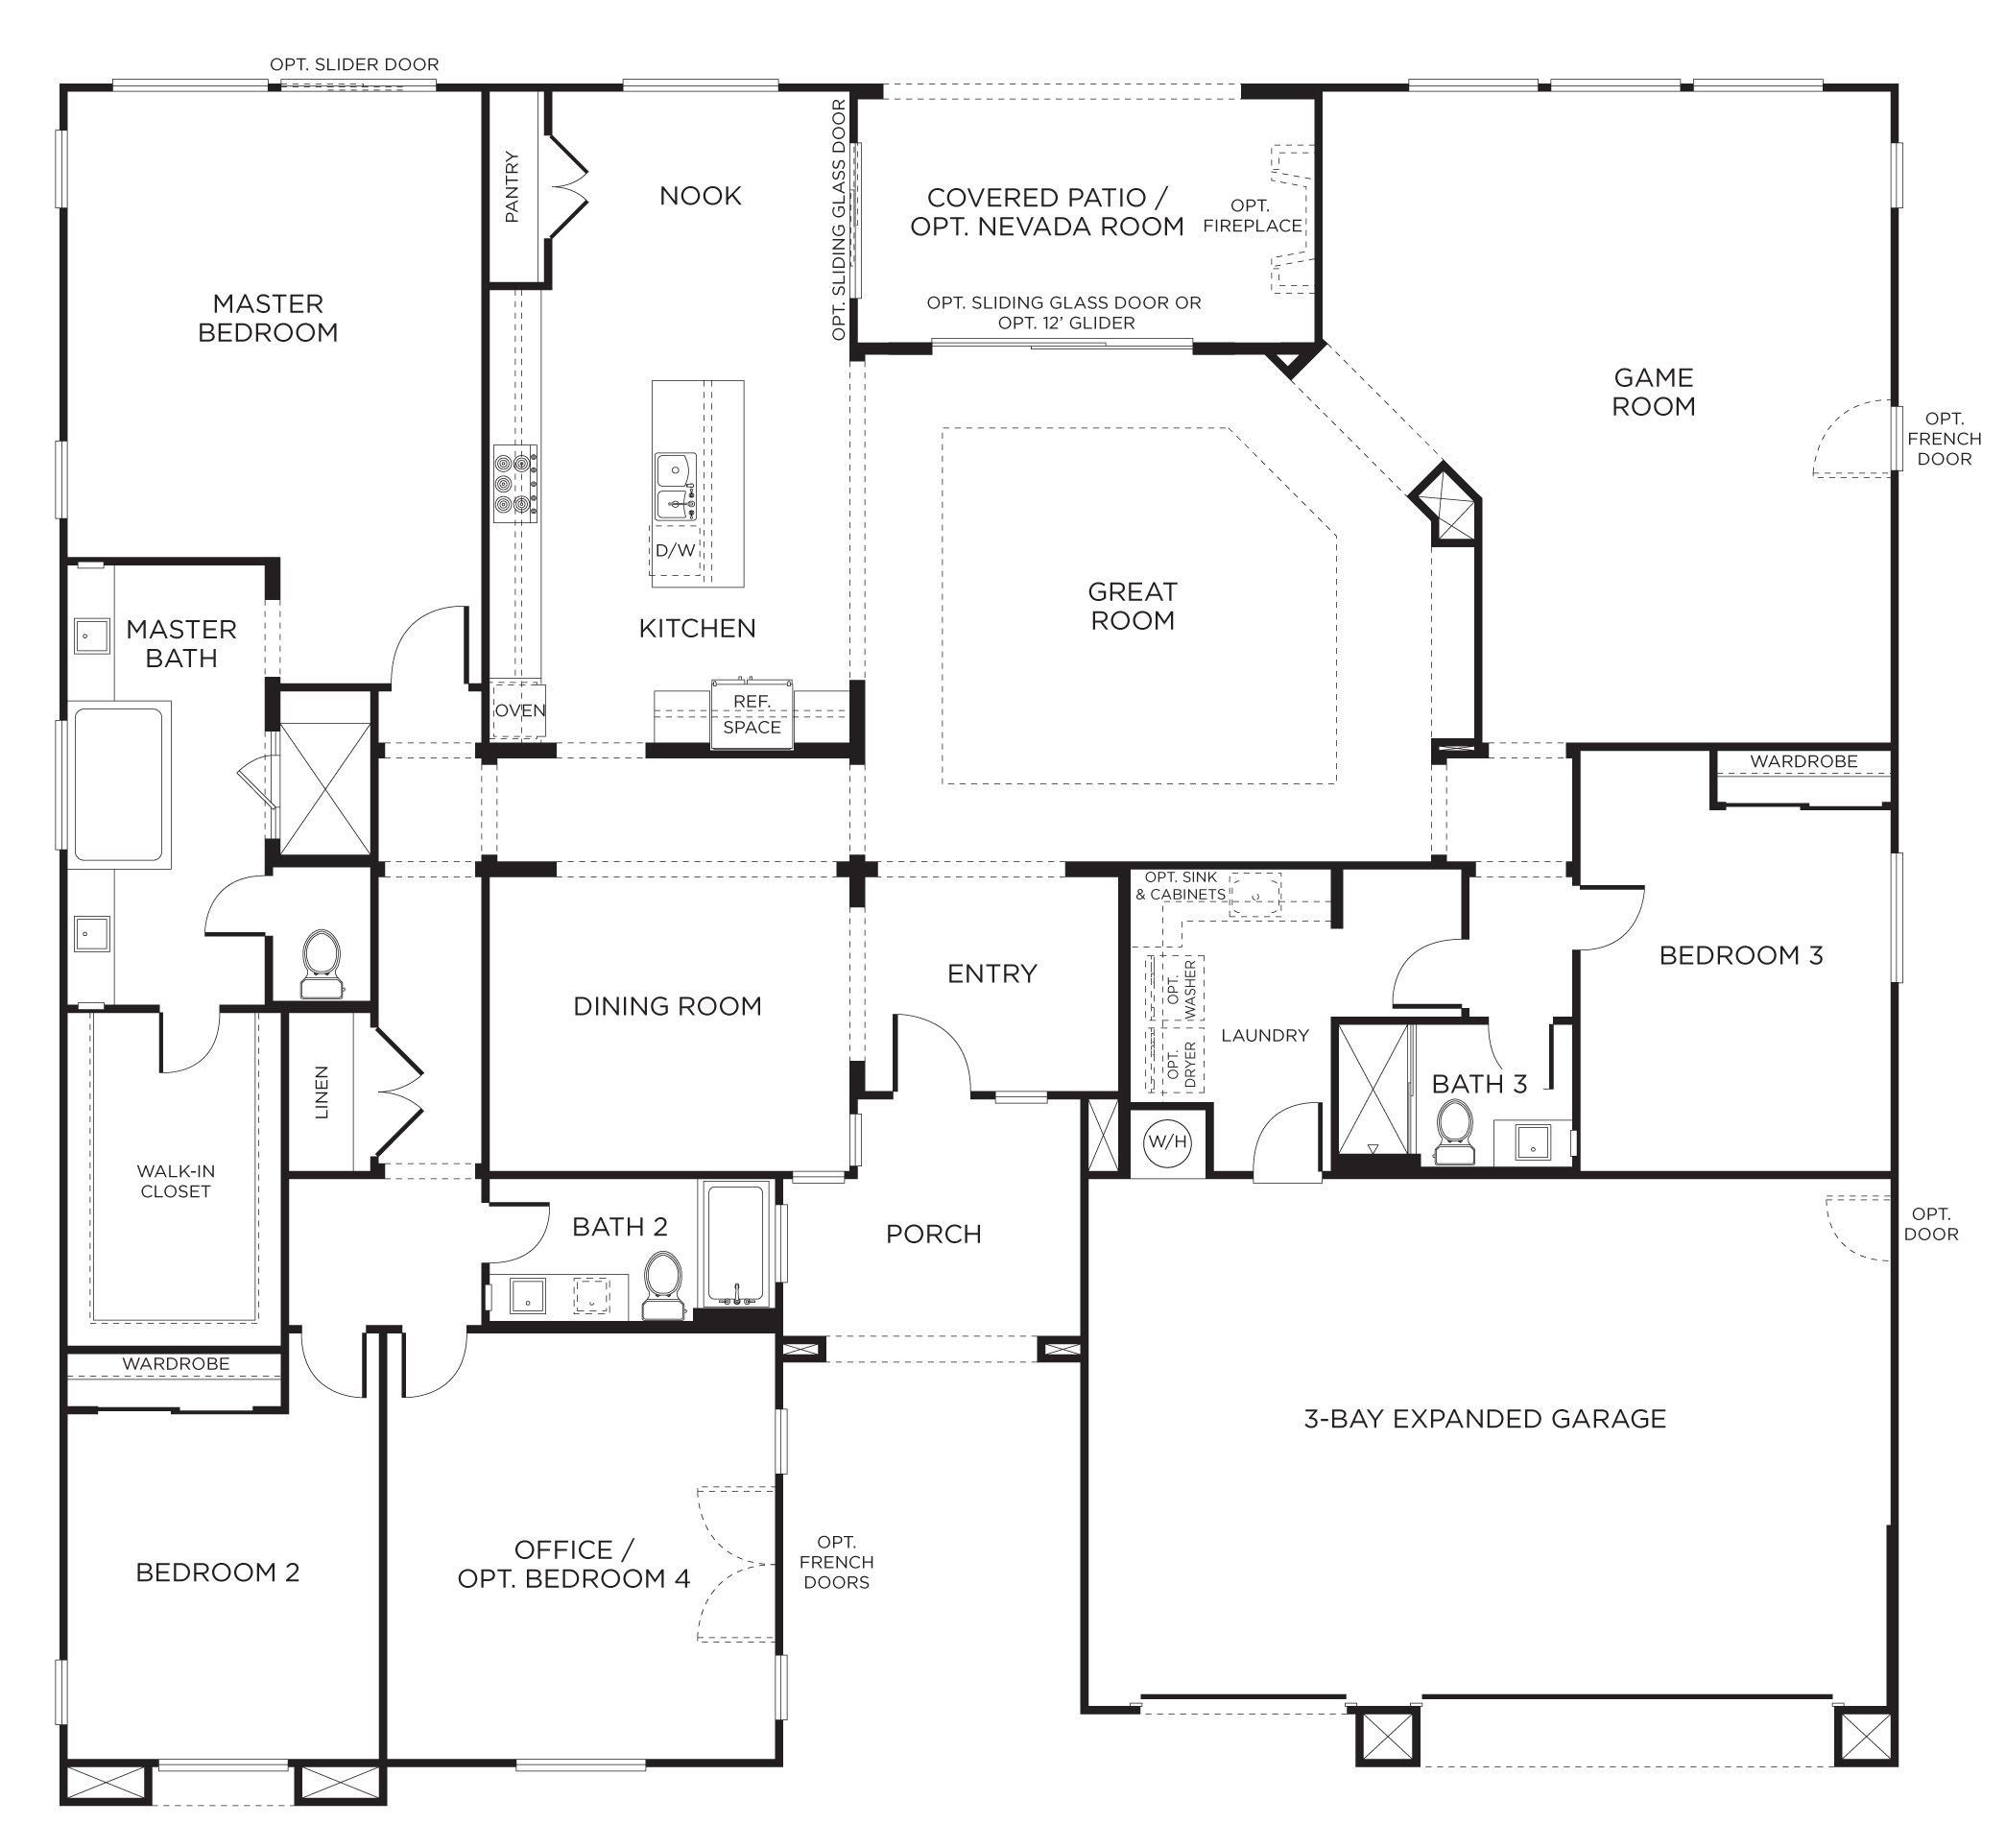 Floorplan 2 34 Bedrooms 3 Bathrooms 3400 Square FeetDream